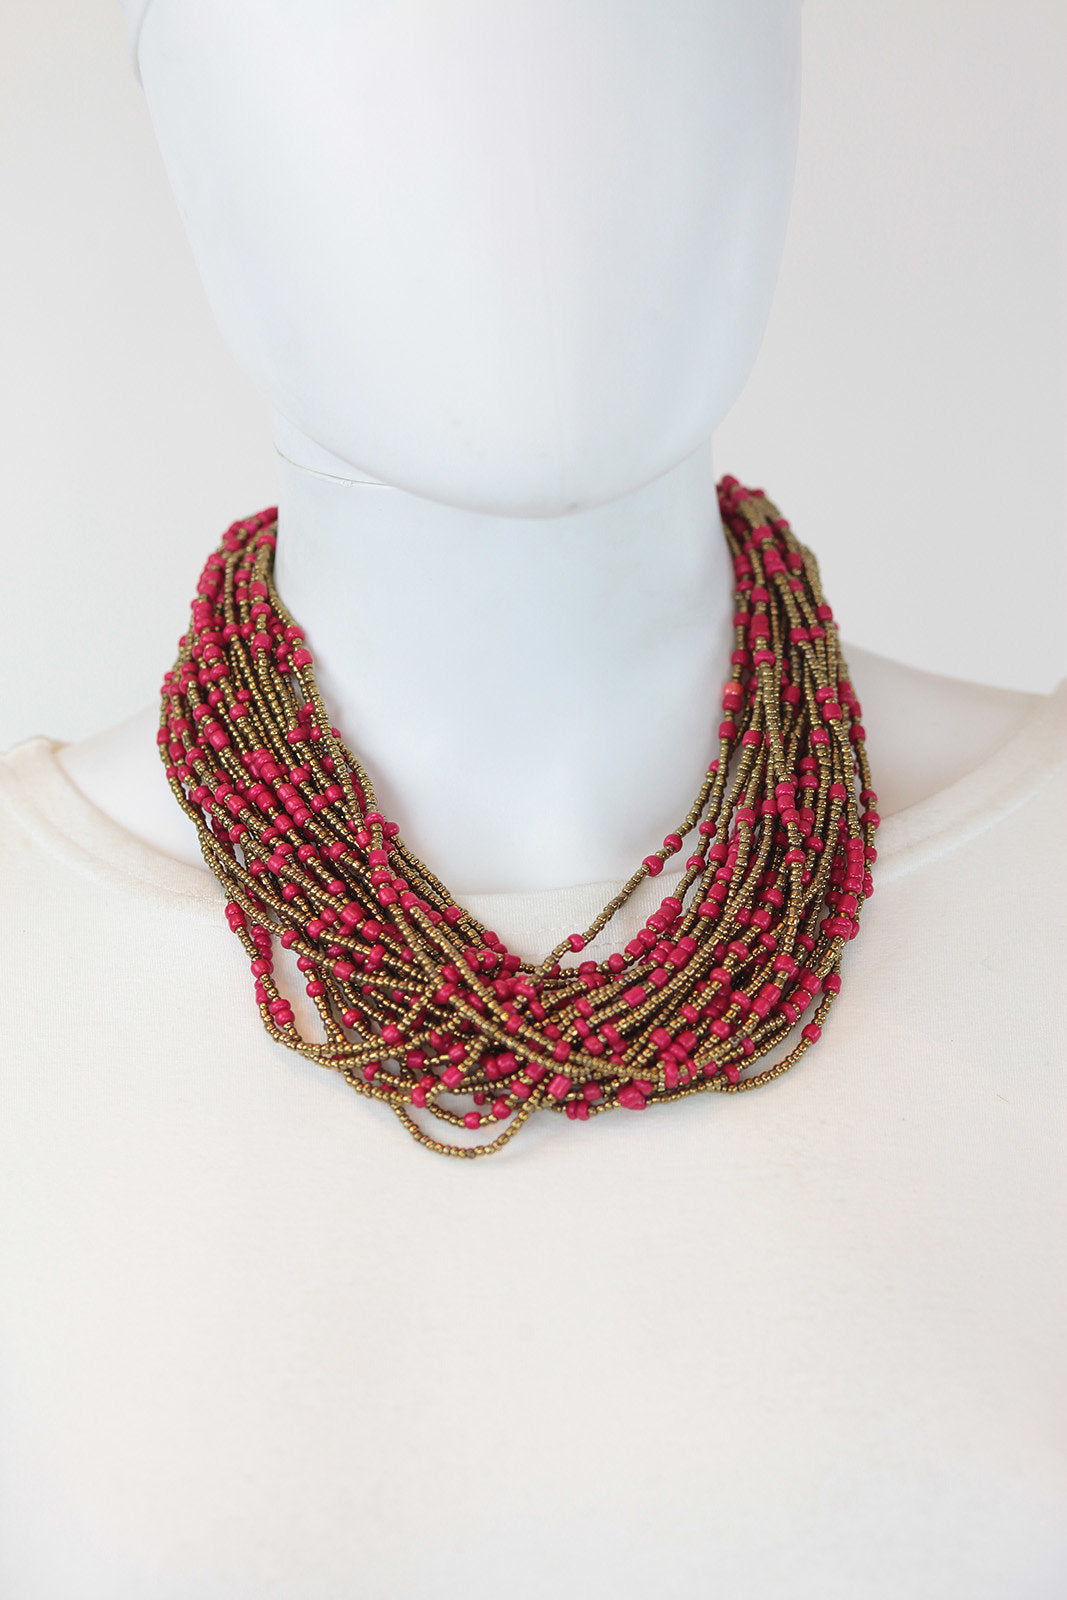 African Maasai Beaded Necklace-Pink/Gold - Africas Closet